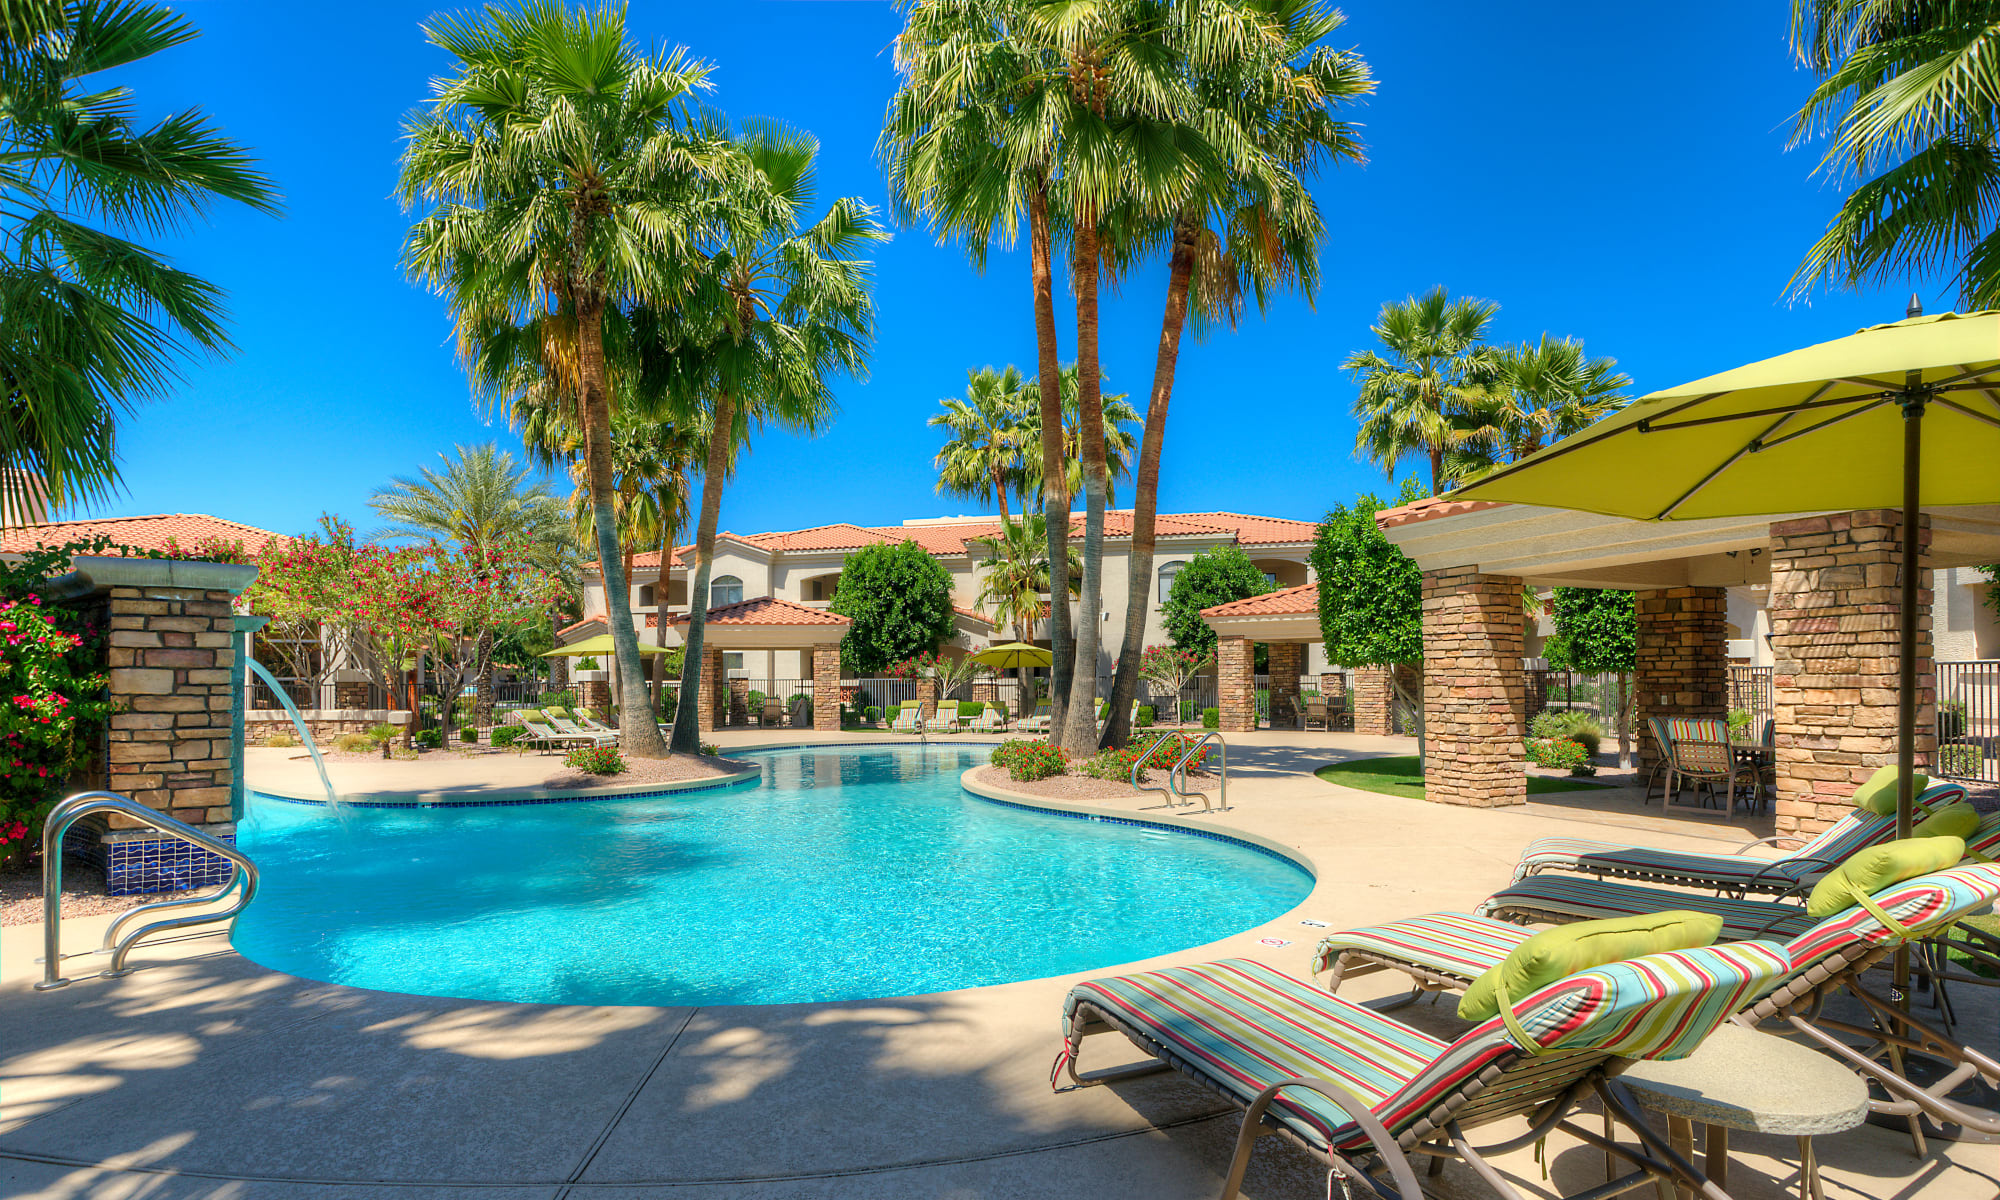 Apartments in Glendale, Arizona at San Prado